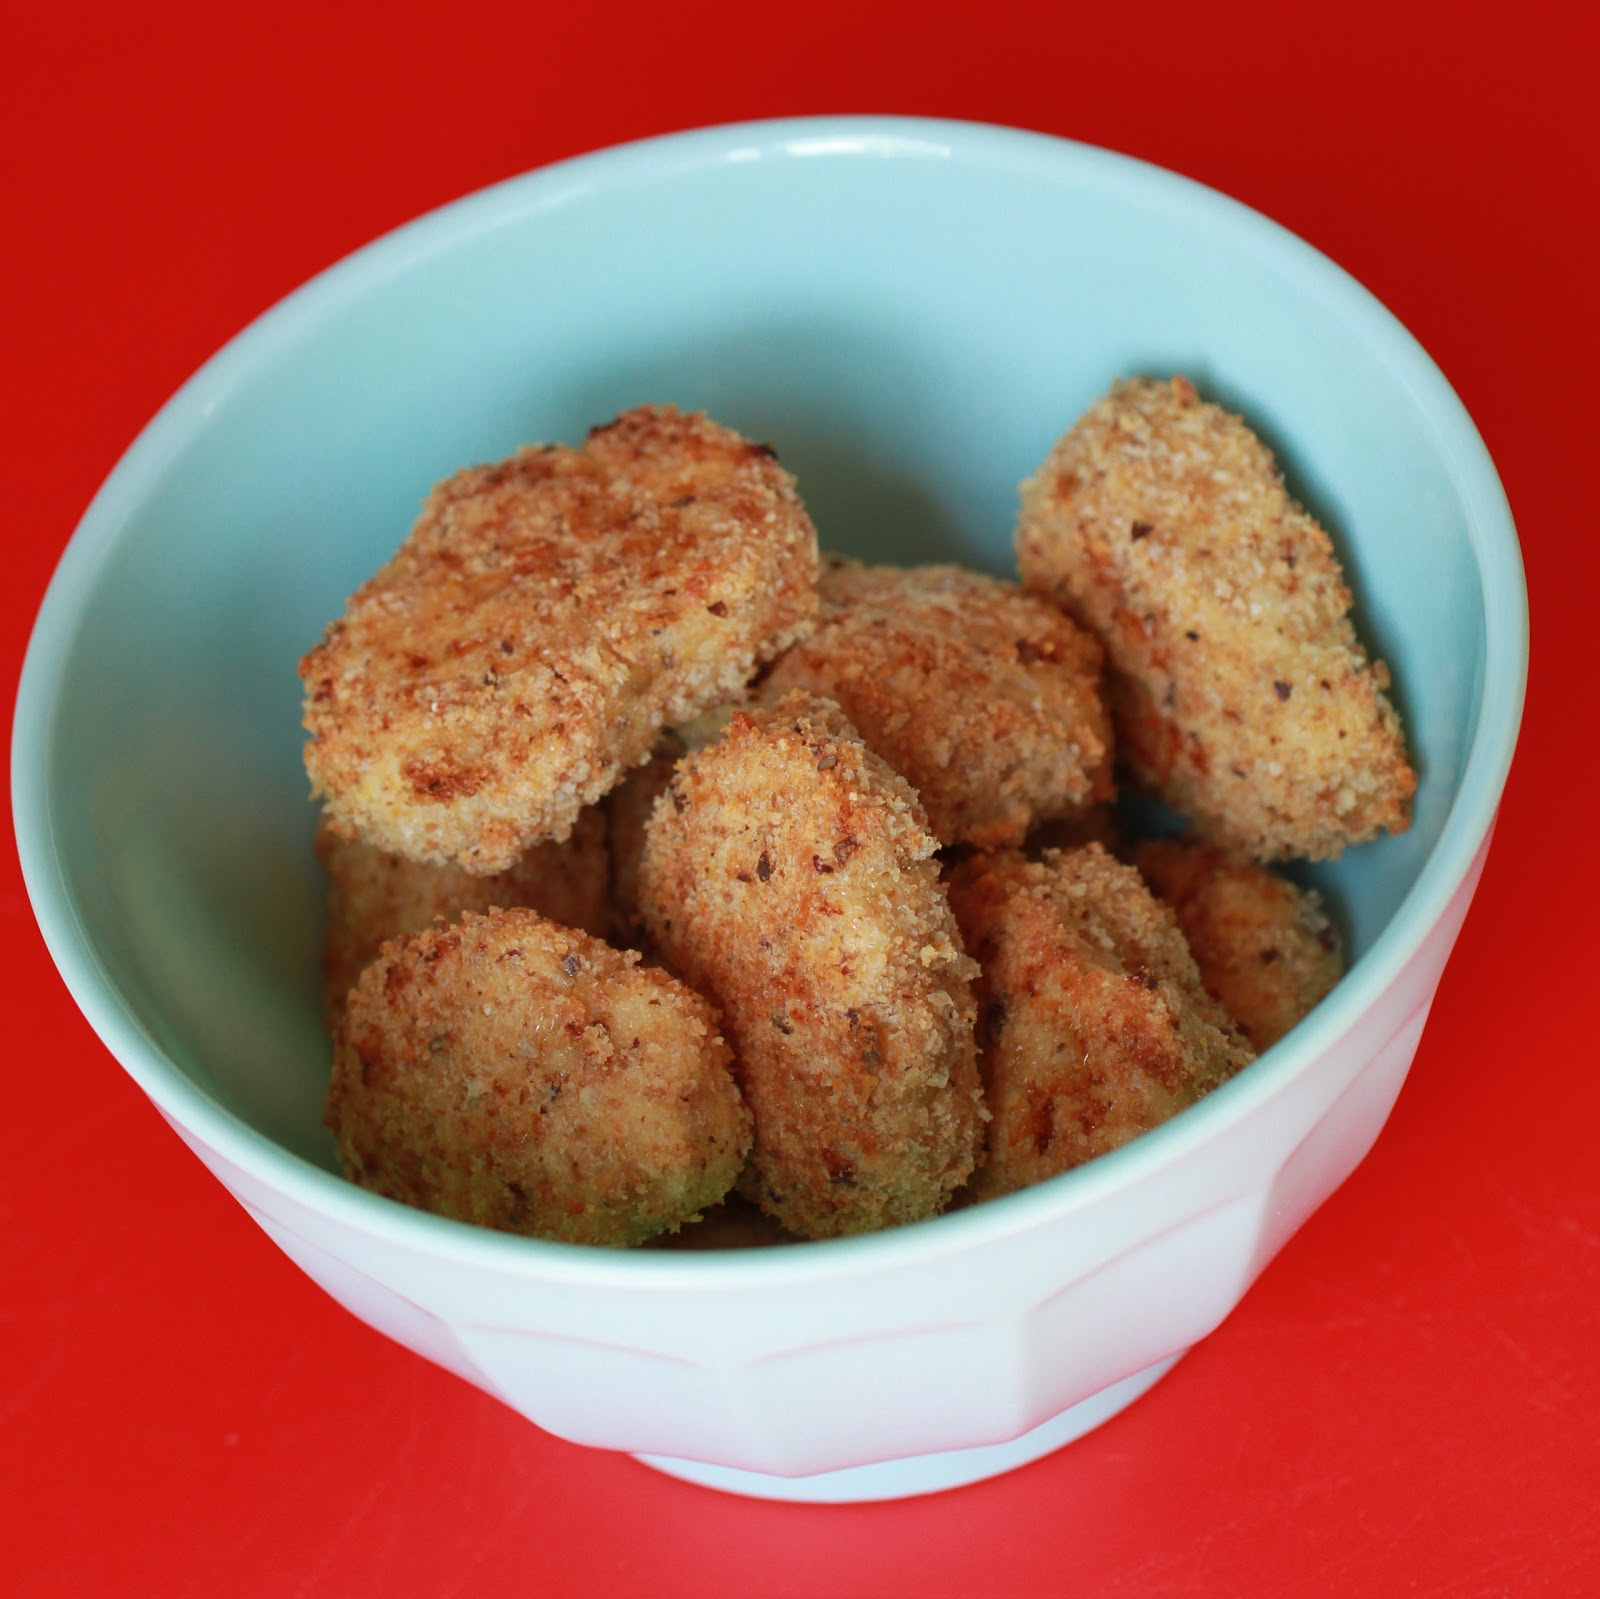 Mixing It Up In HK: Wholesome & Tasty Chicken Nuggets